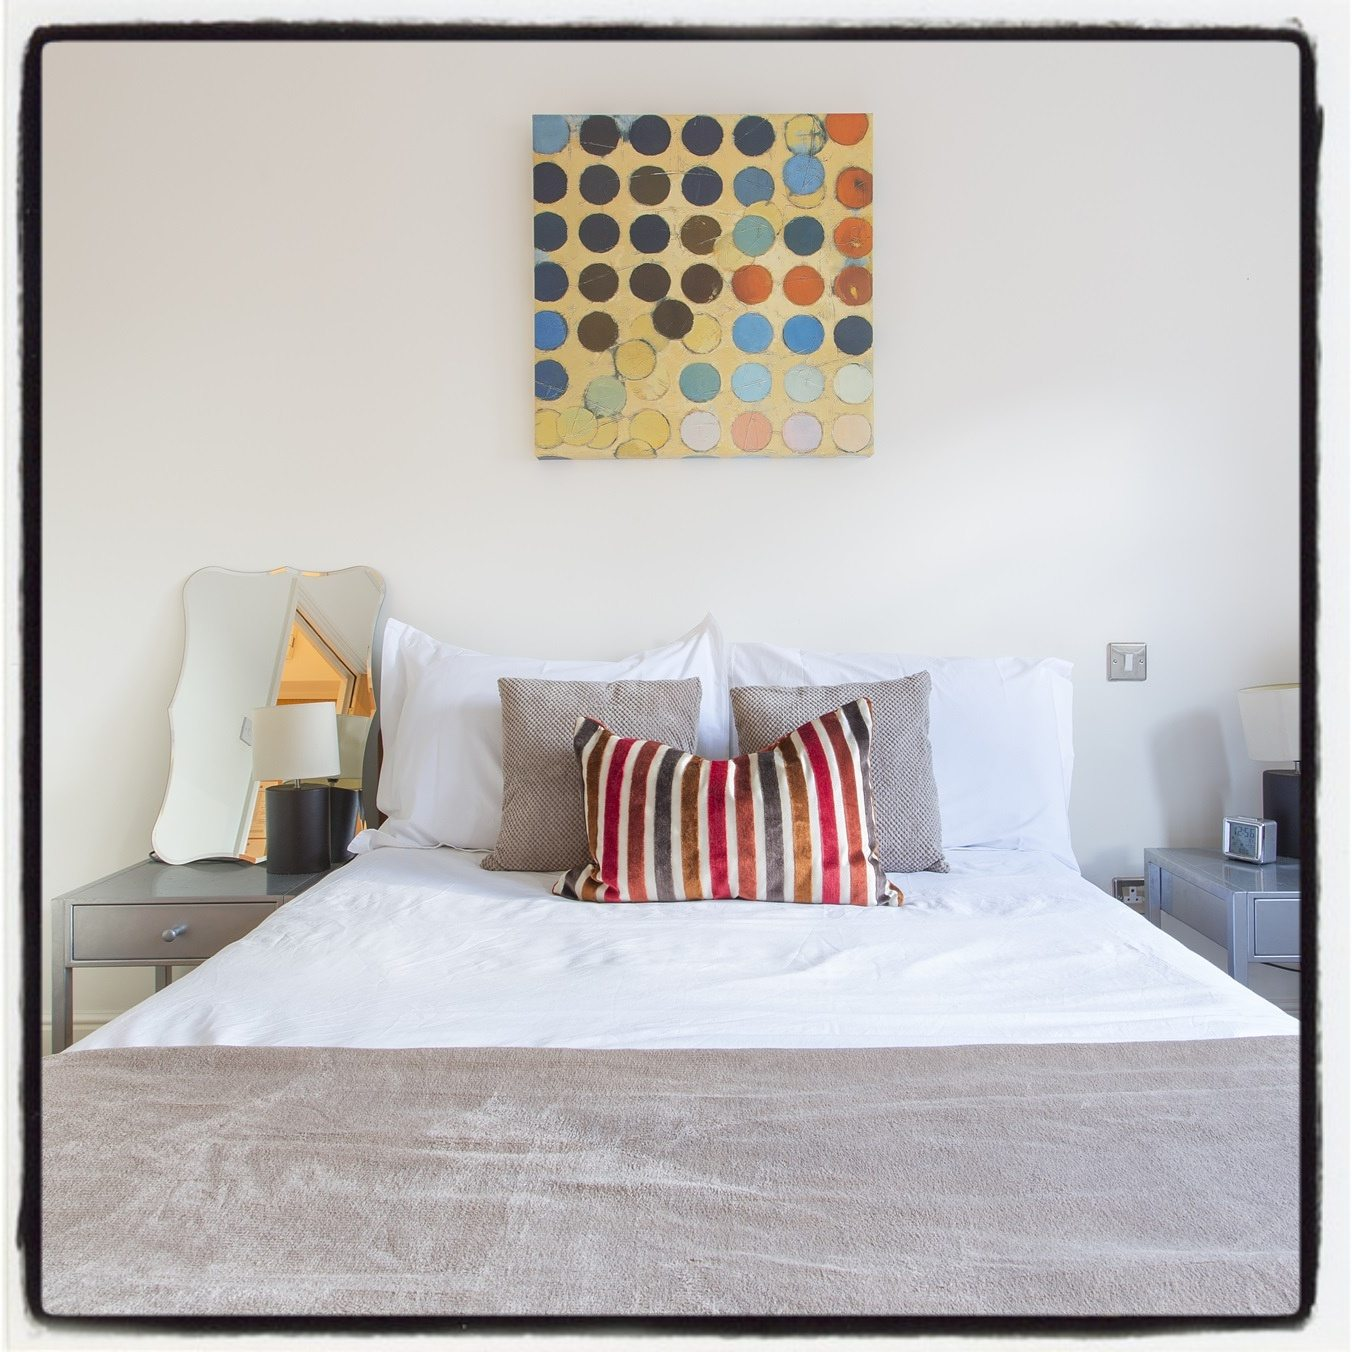 Our Serviced Apartment Walkthrough Videos - Astral House, Liverpool Street - London